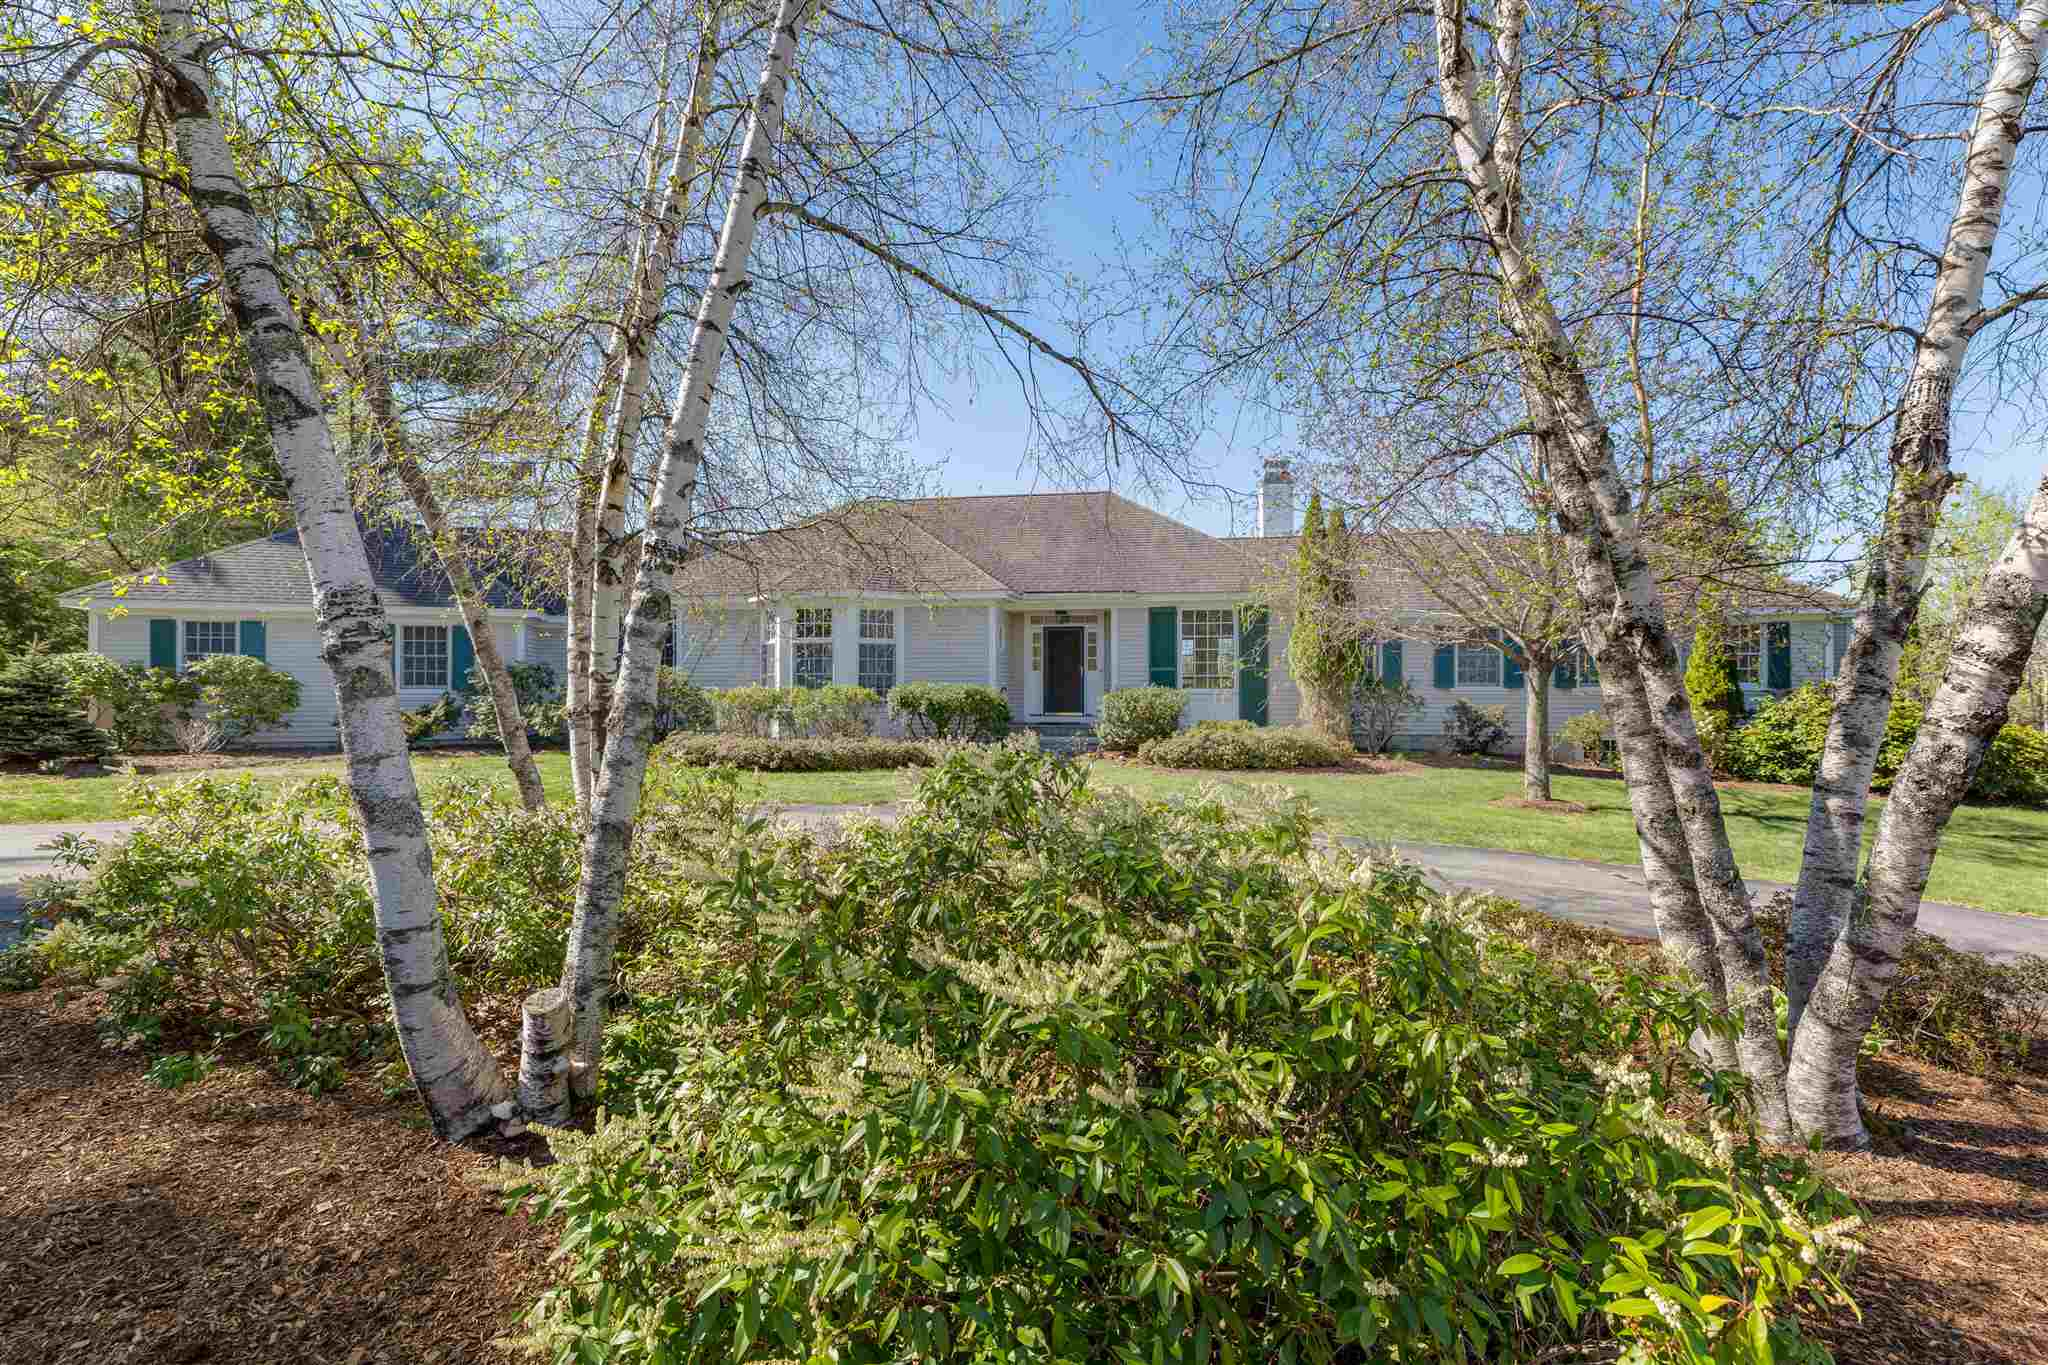 MLS 4807123: 57 Green Lane, New London NH